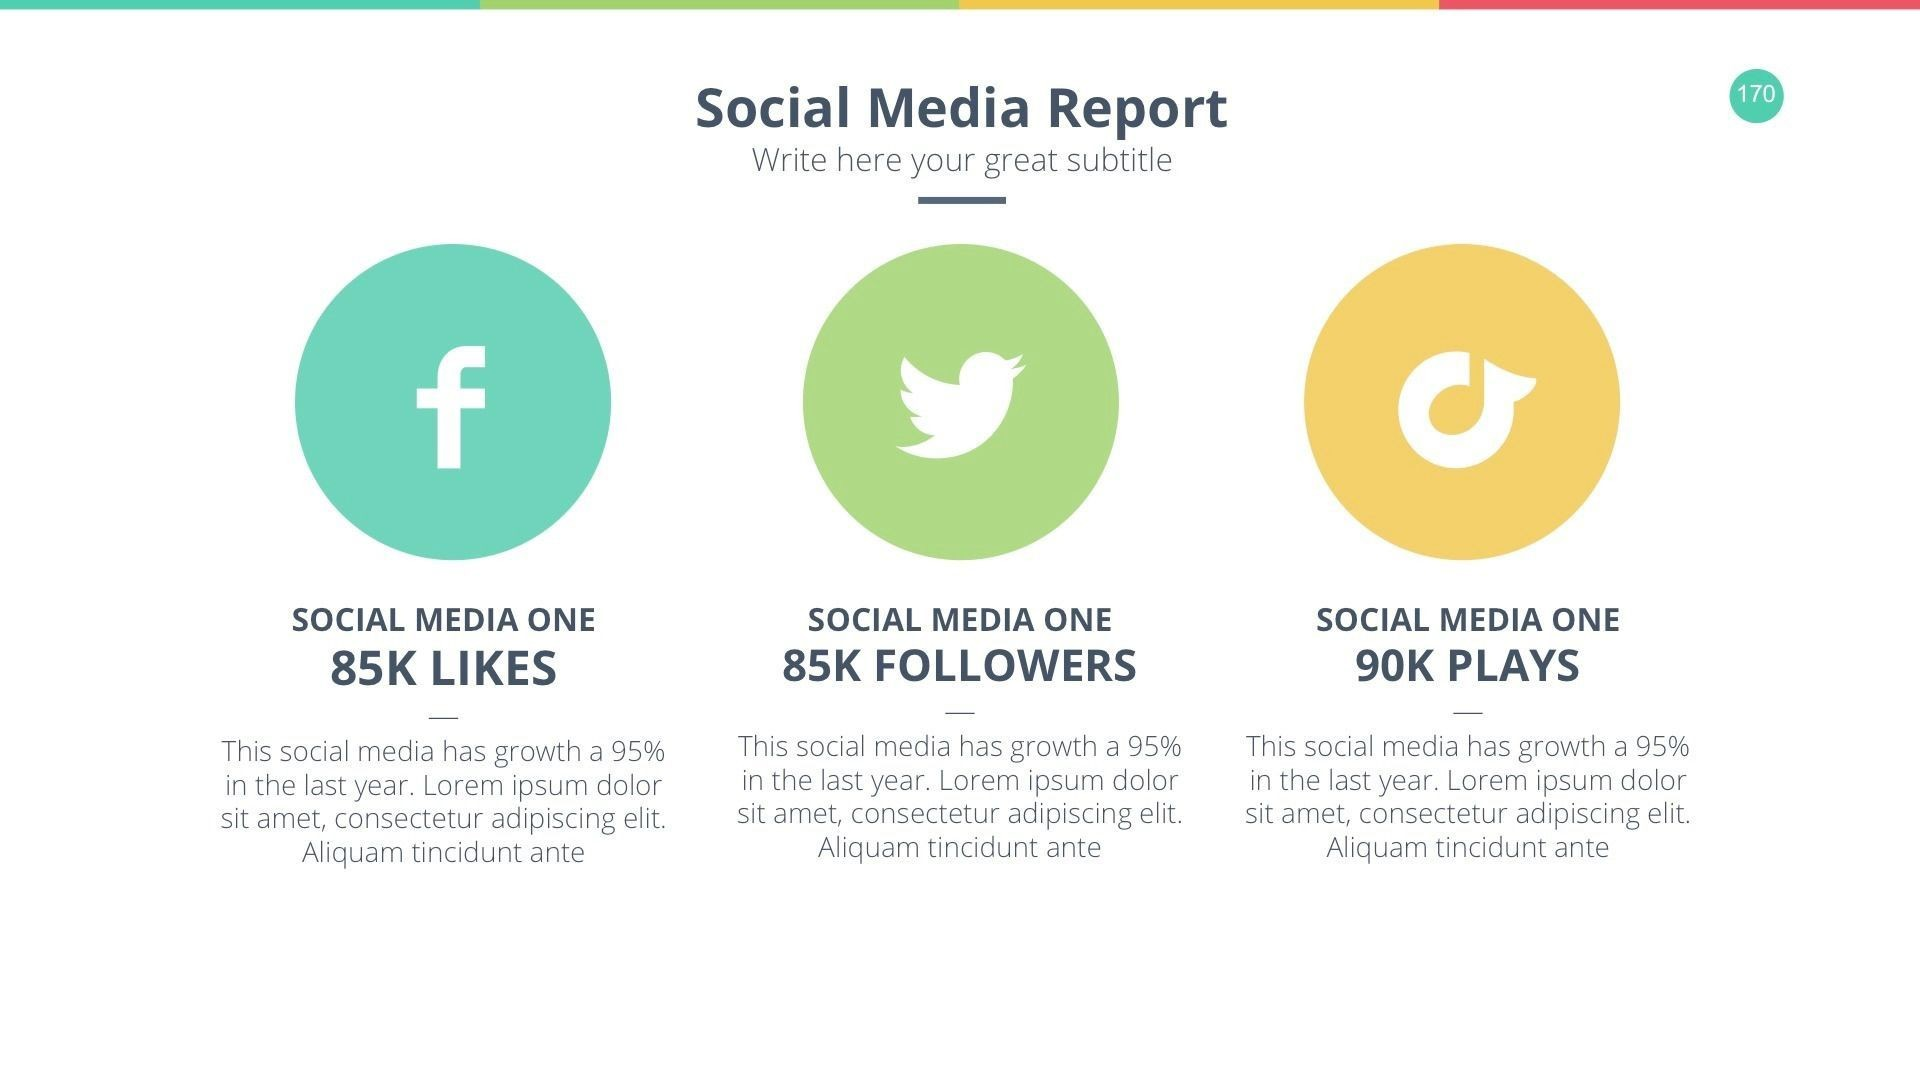 000 Best Social Media Powerpoint Template Highest Quality  Templates Report Free Social-media-marketing-powerpoint-template1920